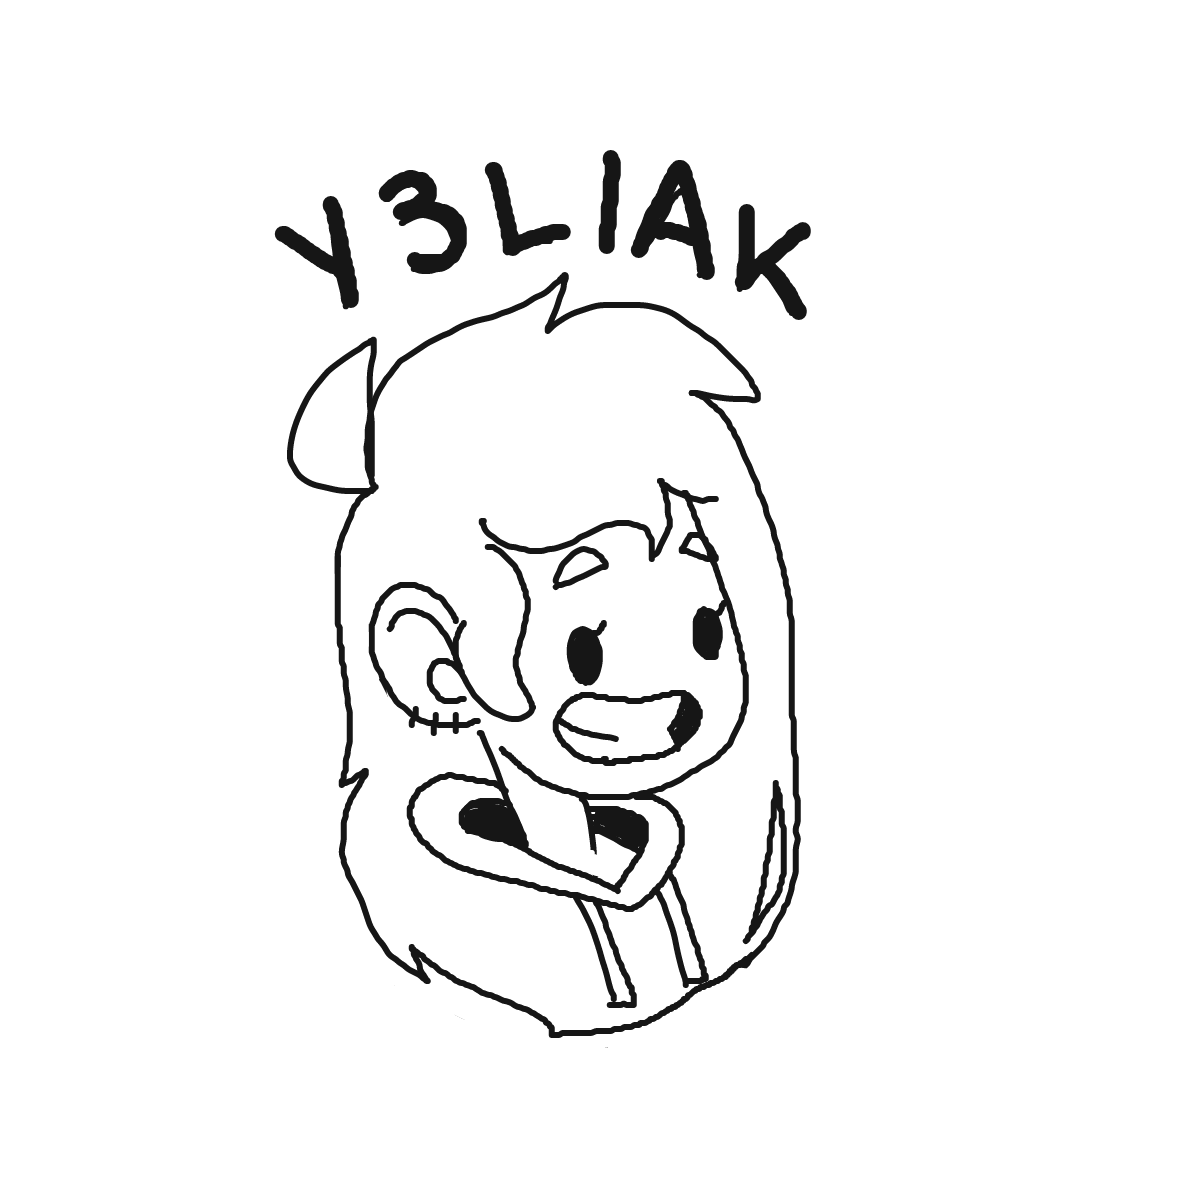 Profile picture for the comic artist, y3liak